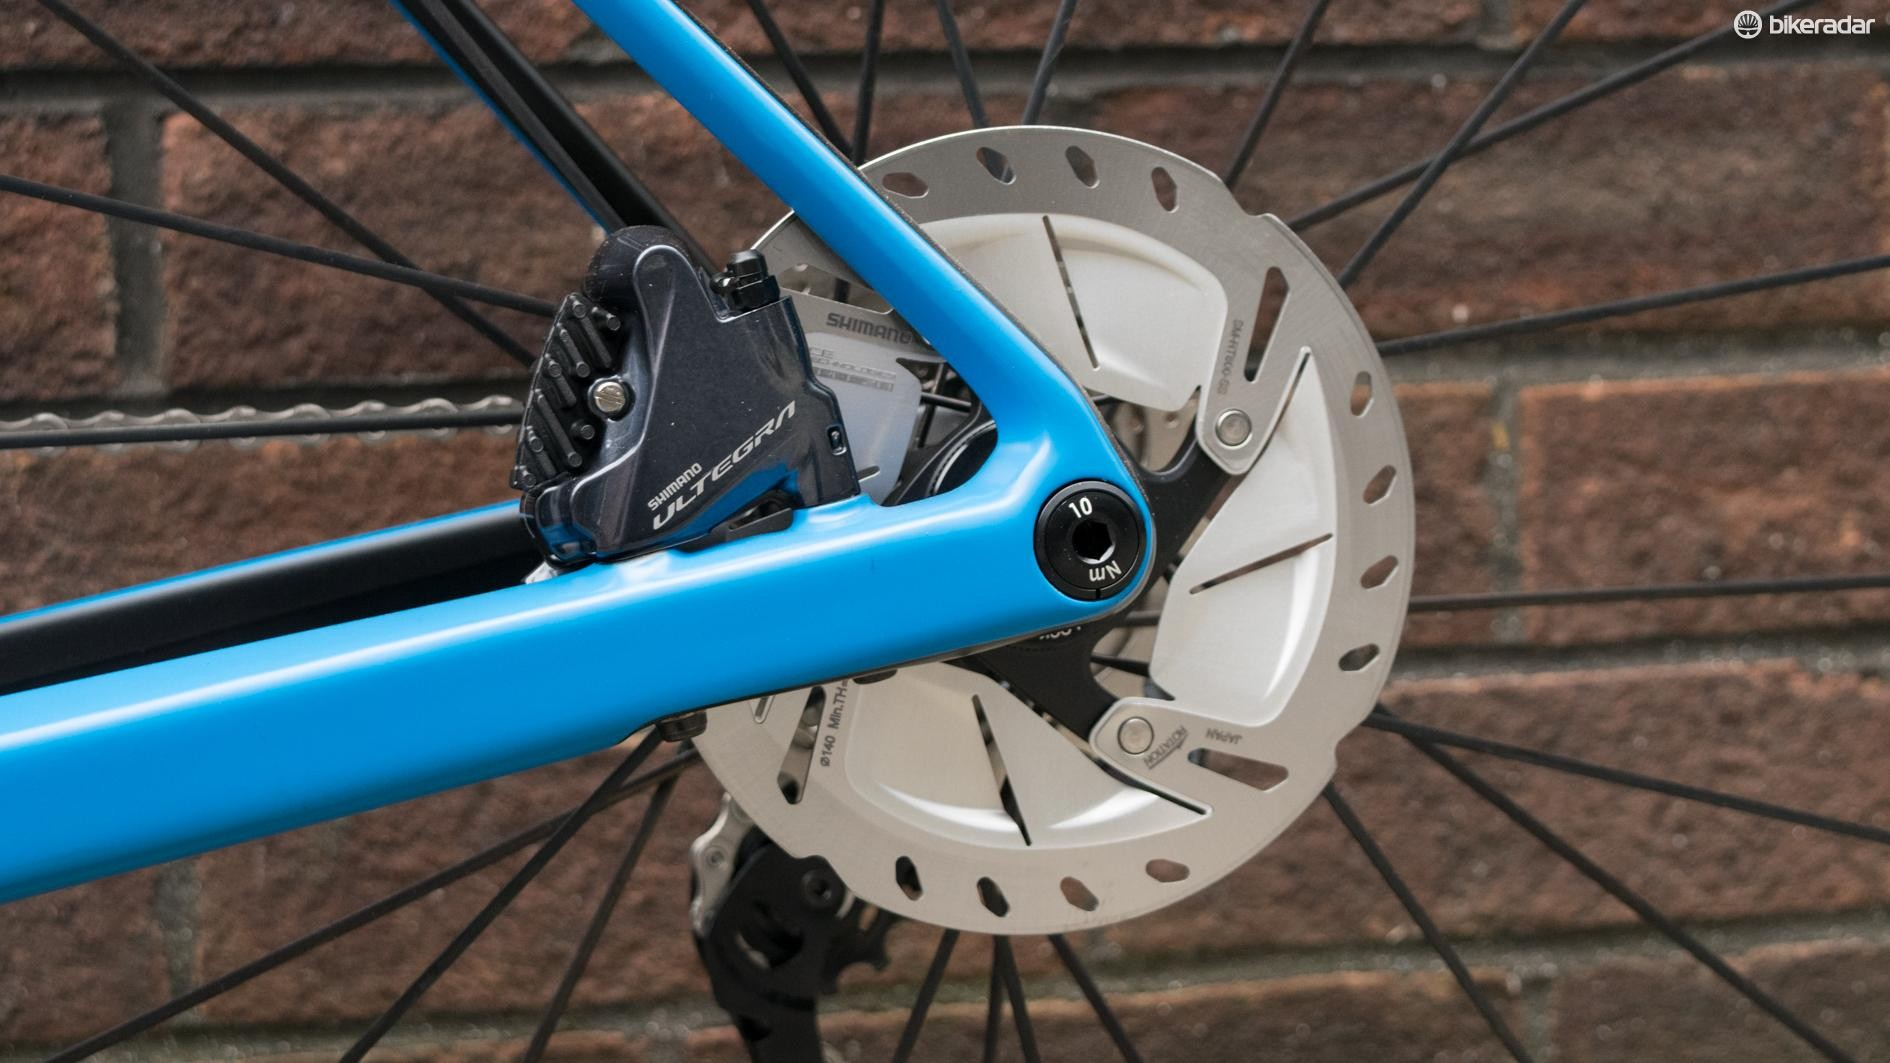 Disc brakes and thru-axles are now a common sight on bikes in this price range